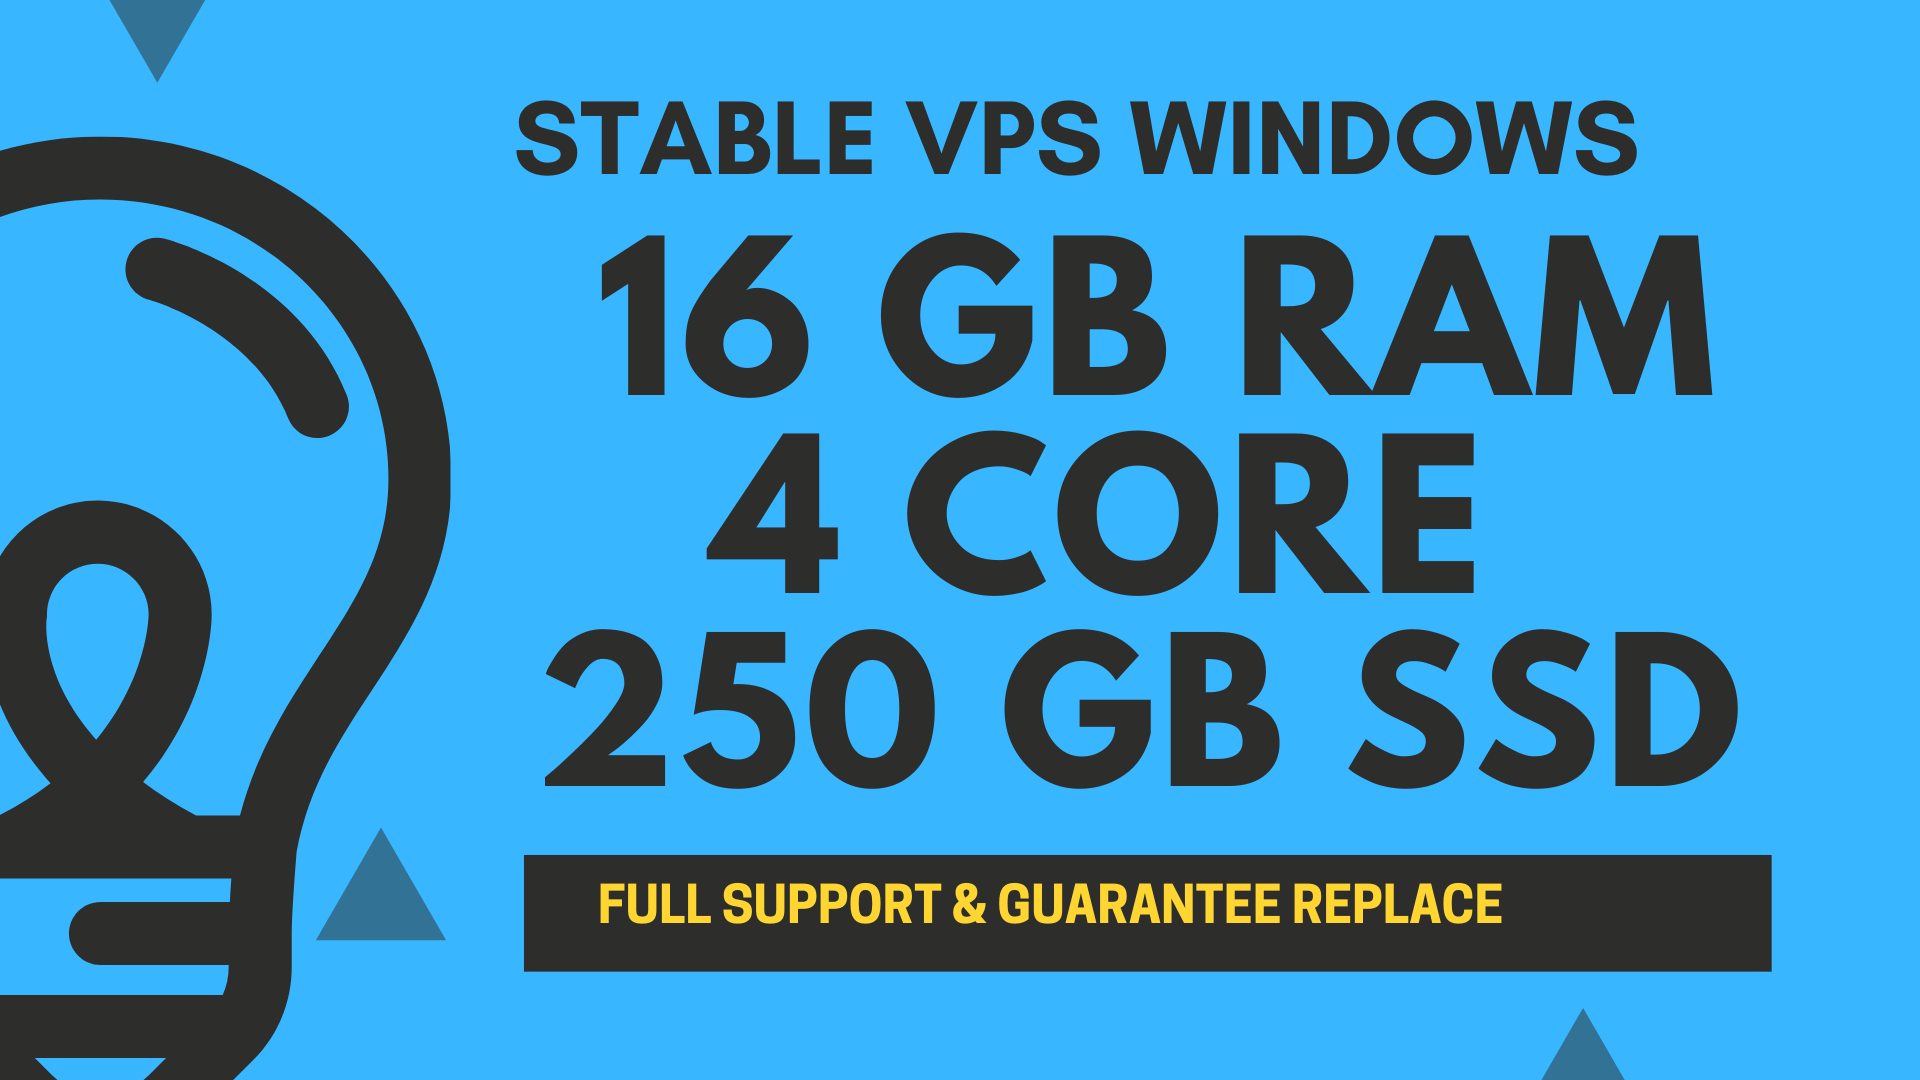 STABLE Windows VPS RDP 16GB RAM 4CORE 250GB SSD